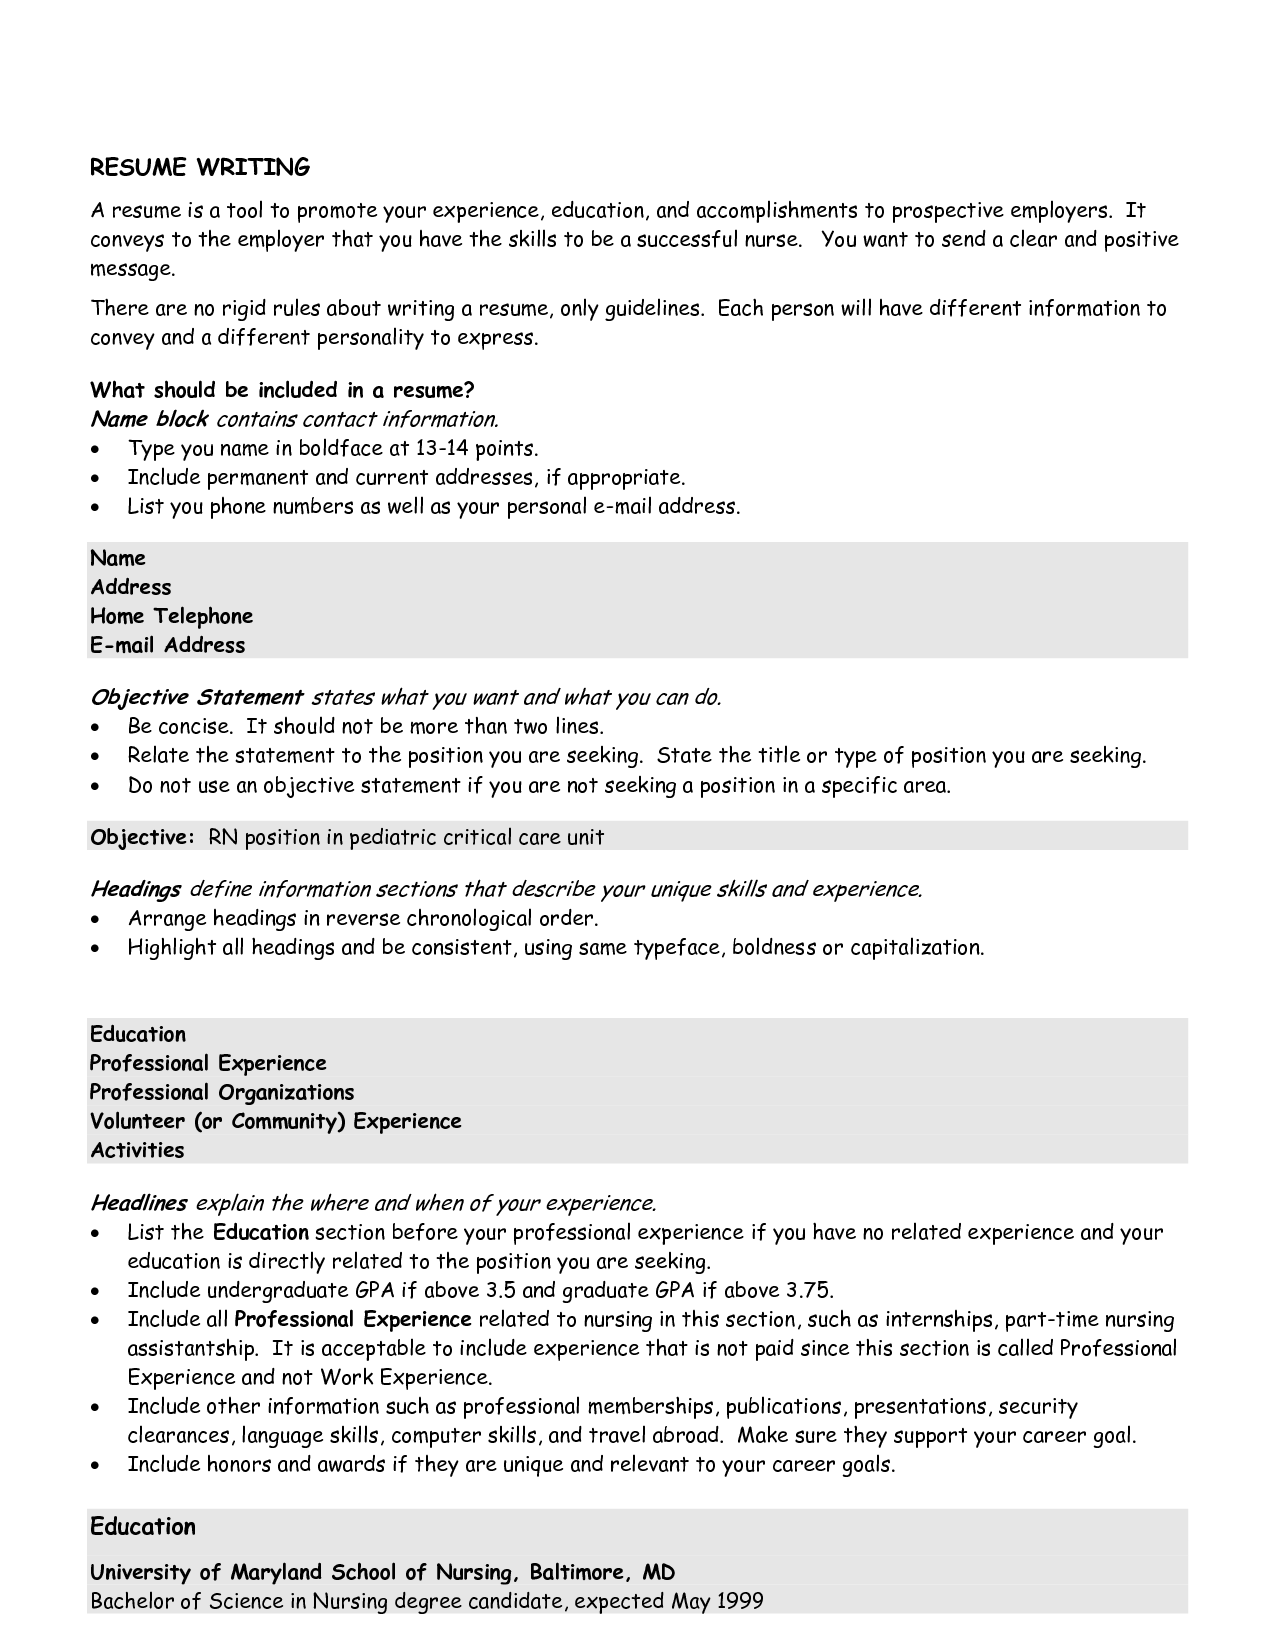 Good Opening Statement For Resume And Sample Resume